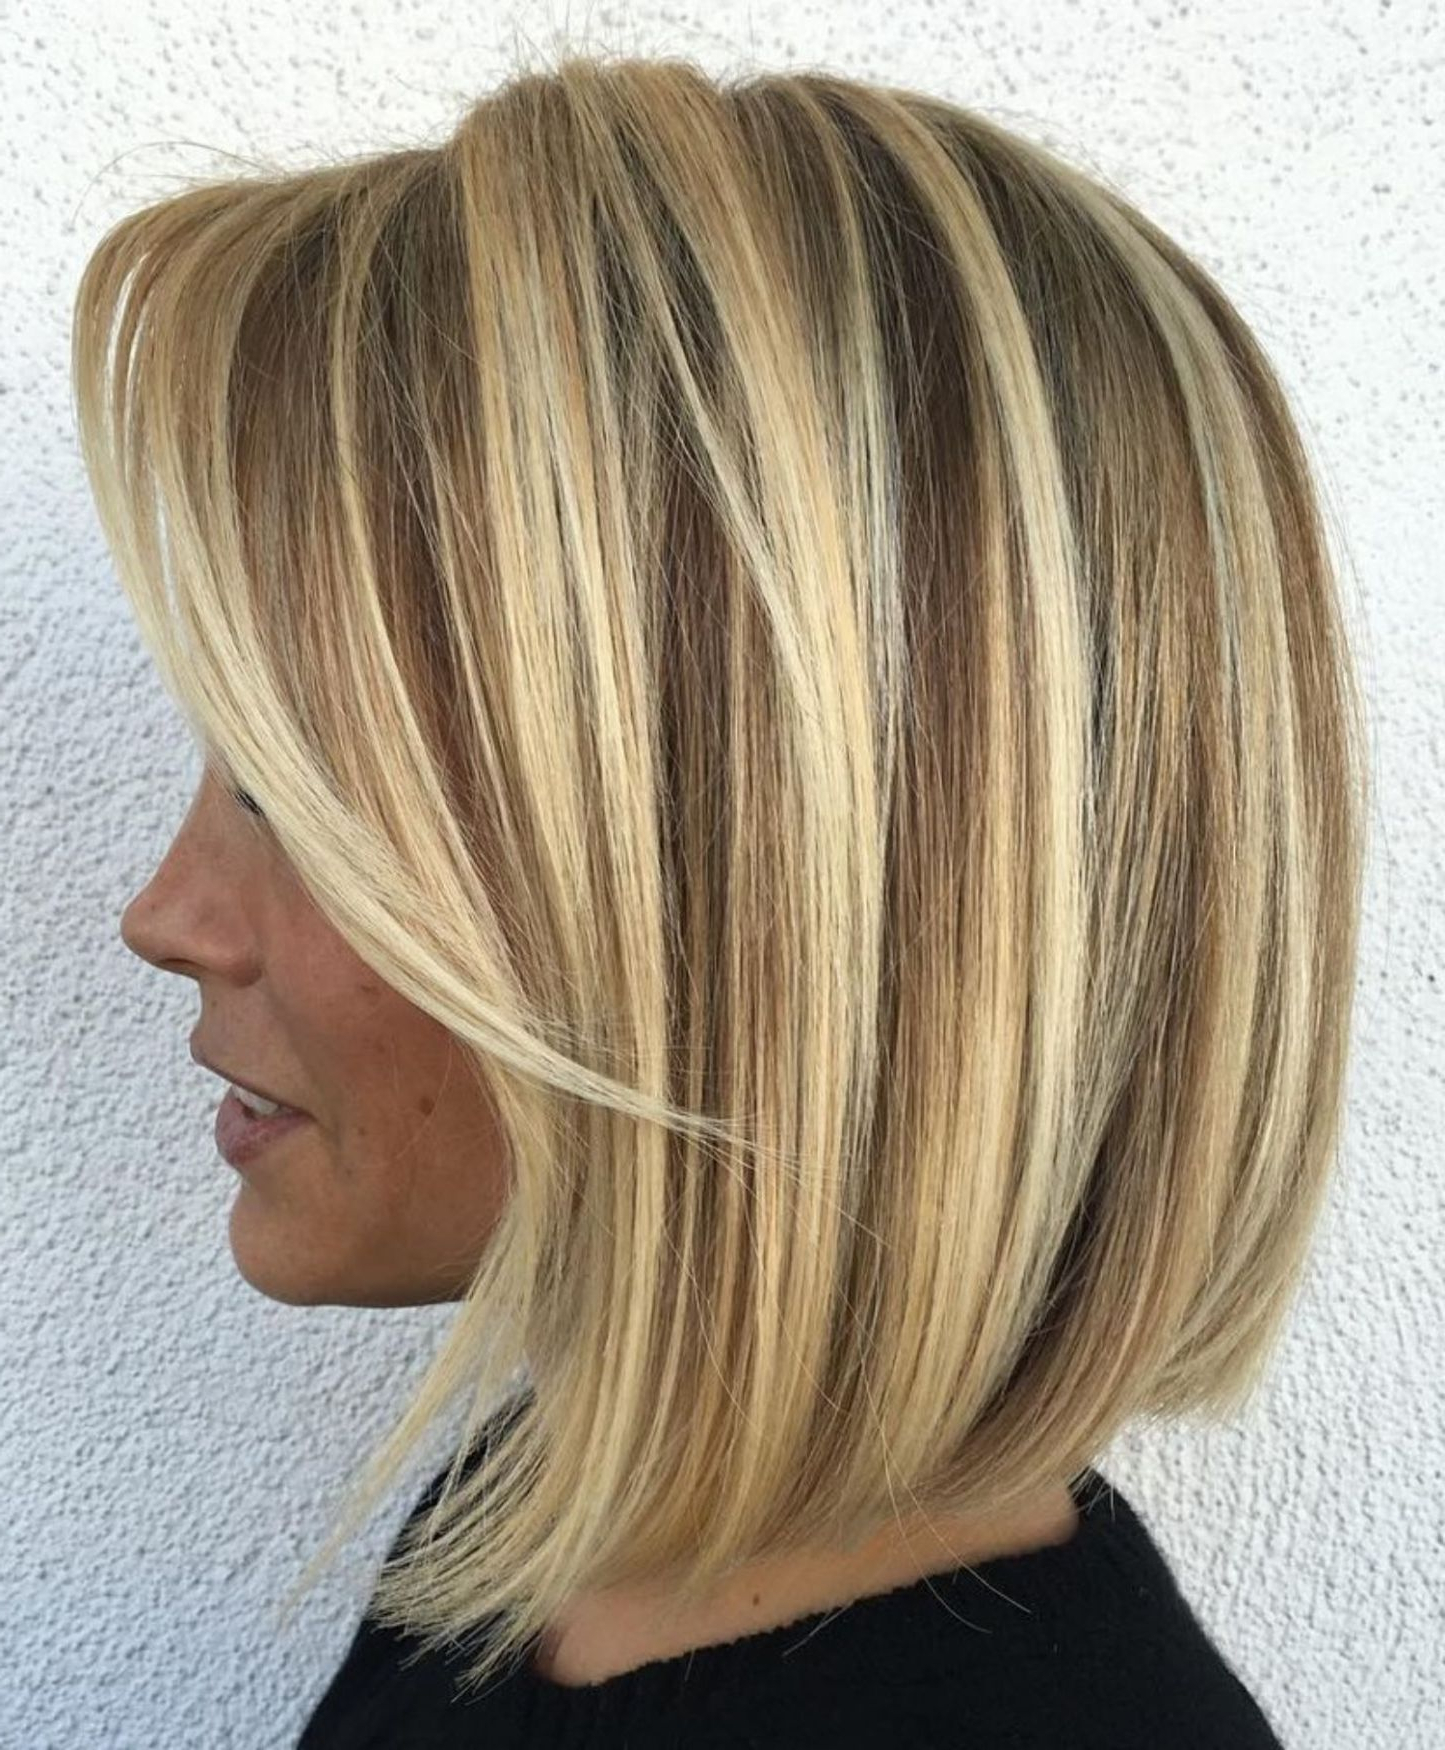 Hair Color With Trendy Medium Haircuts For Blondes With Thin Hair (View 11 of 20)